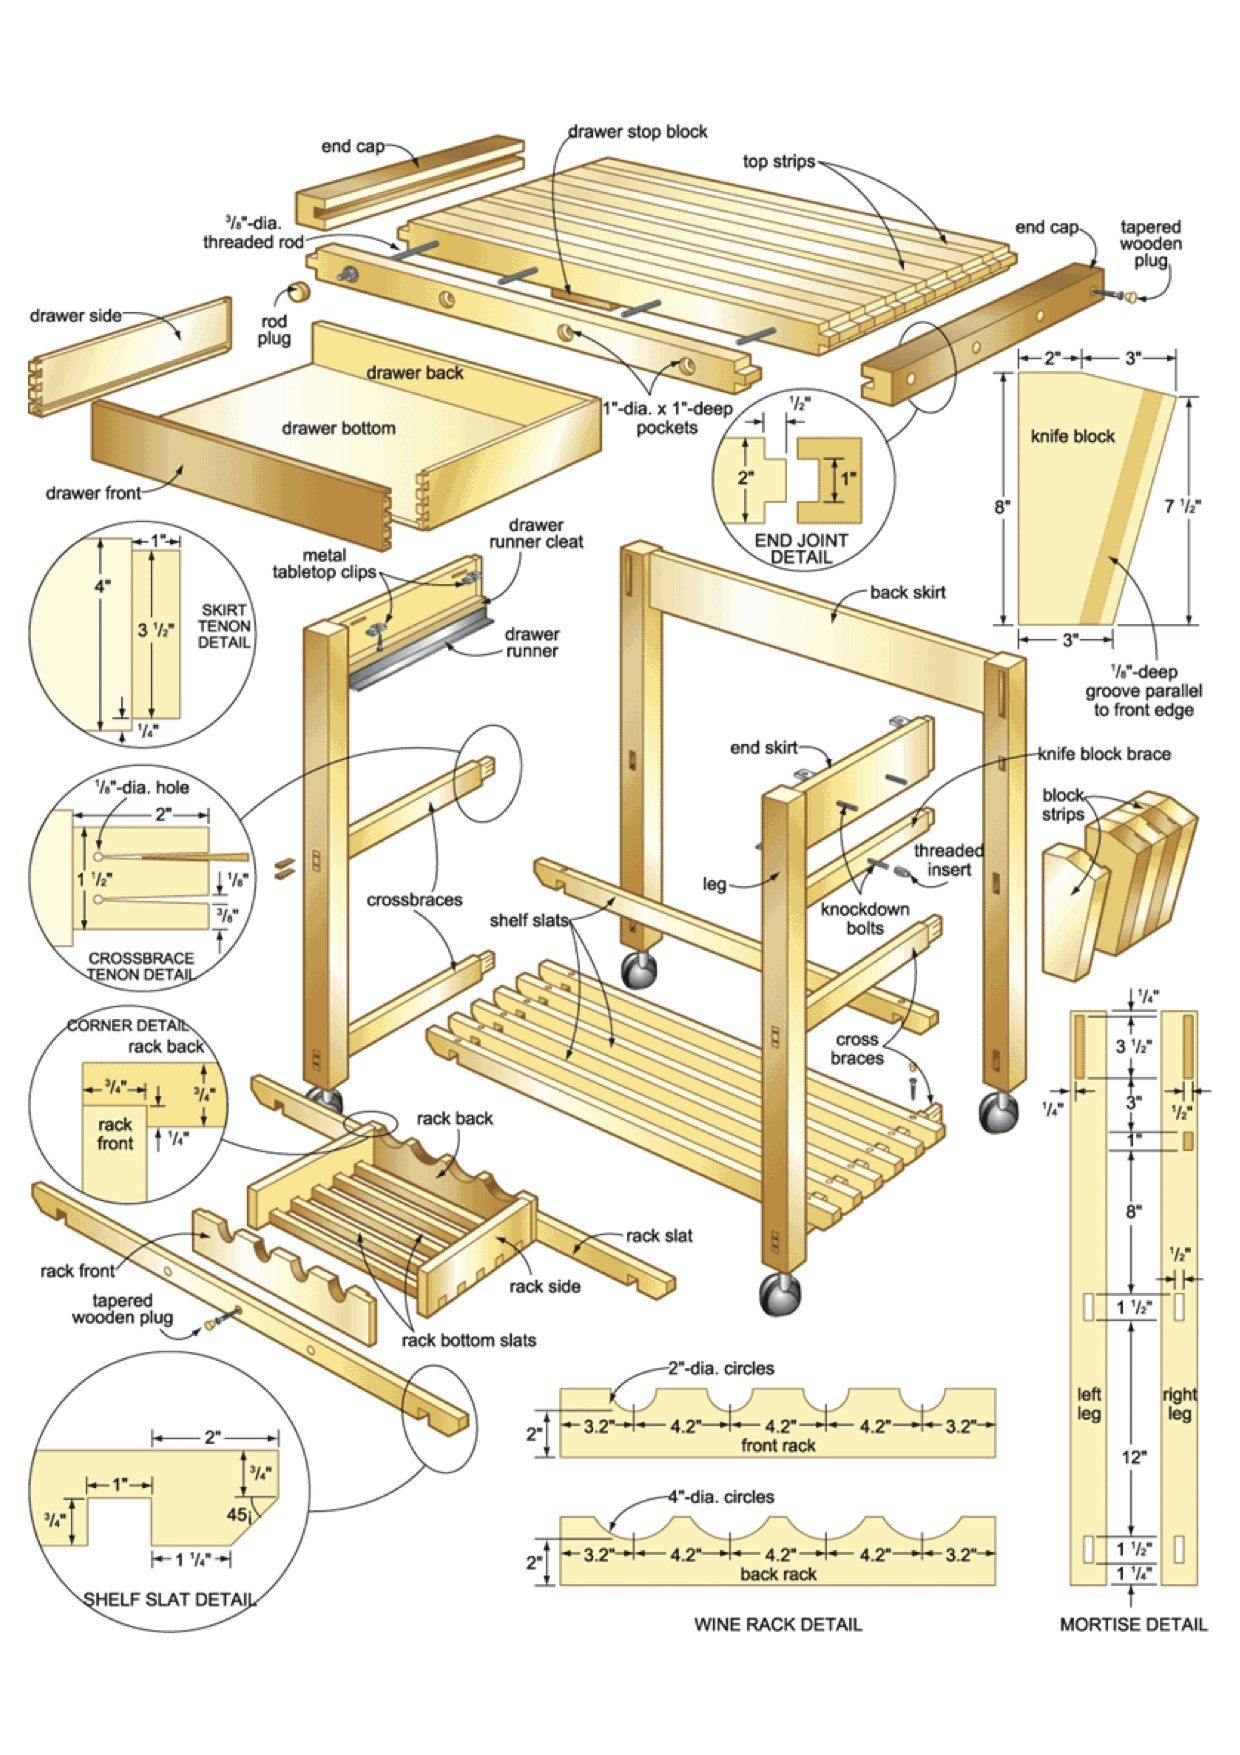 Genial Furniture, Custom DIY Portable Butcher Block Table Plan On Wheels With  Drawer And Shelves Plus Wine Rack Storage Ideas ~ Butcher Block Table